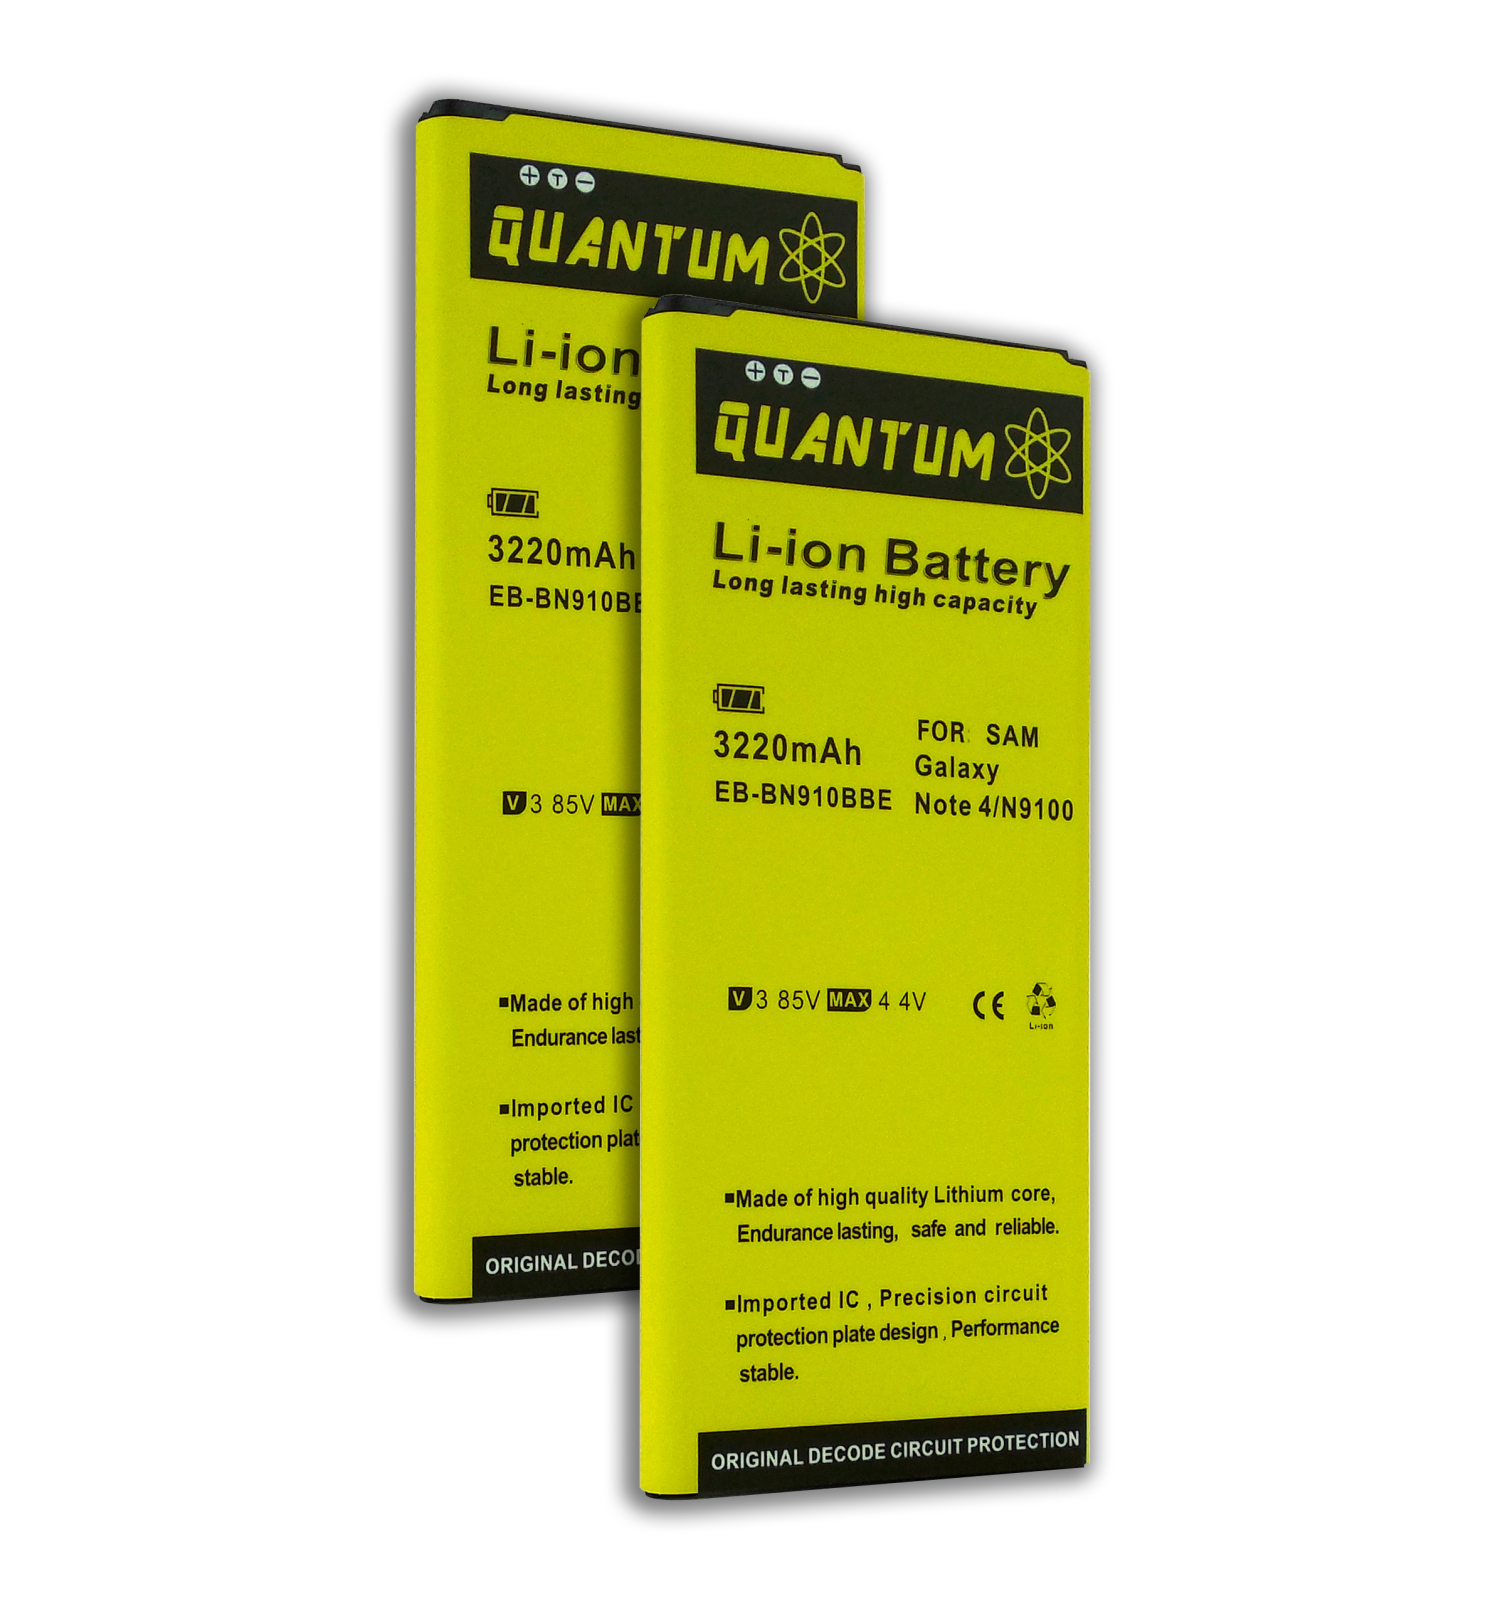 QUANTUM 2x 3,220 mAh Batteries for Samsung Galaxy Note 4, 12 MONTH WARRANTY